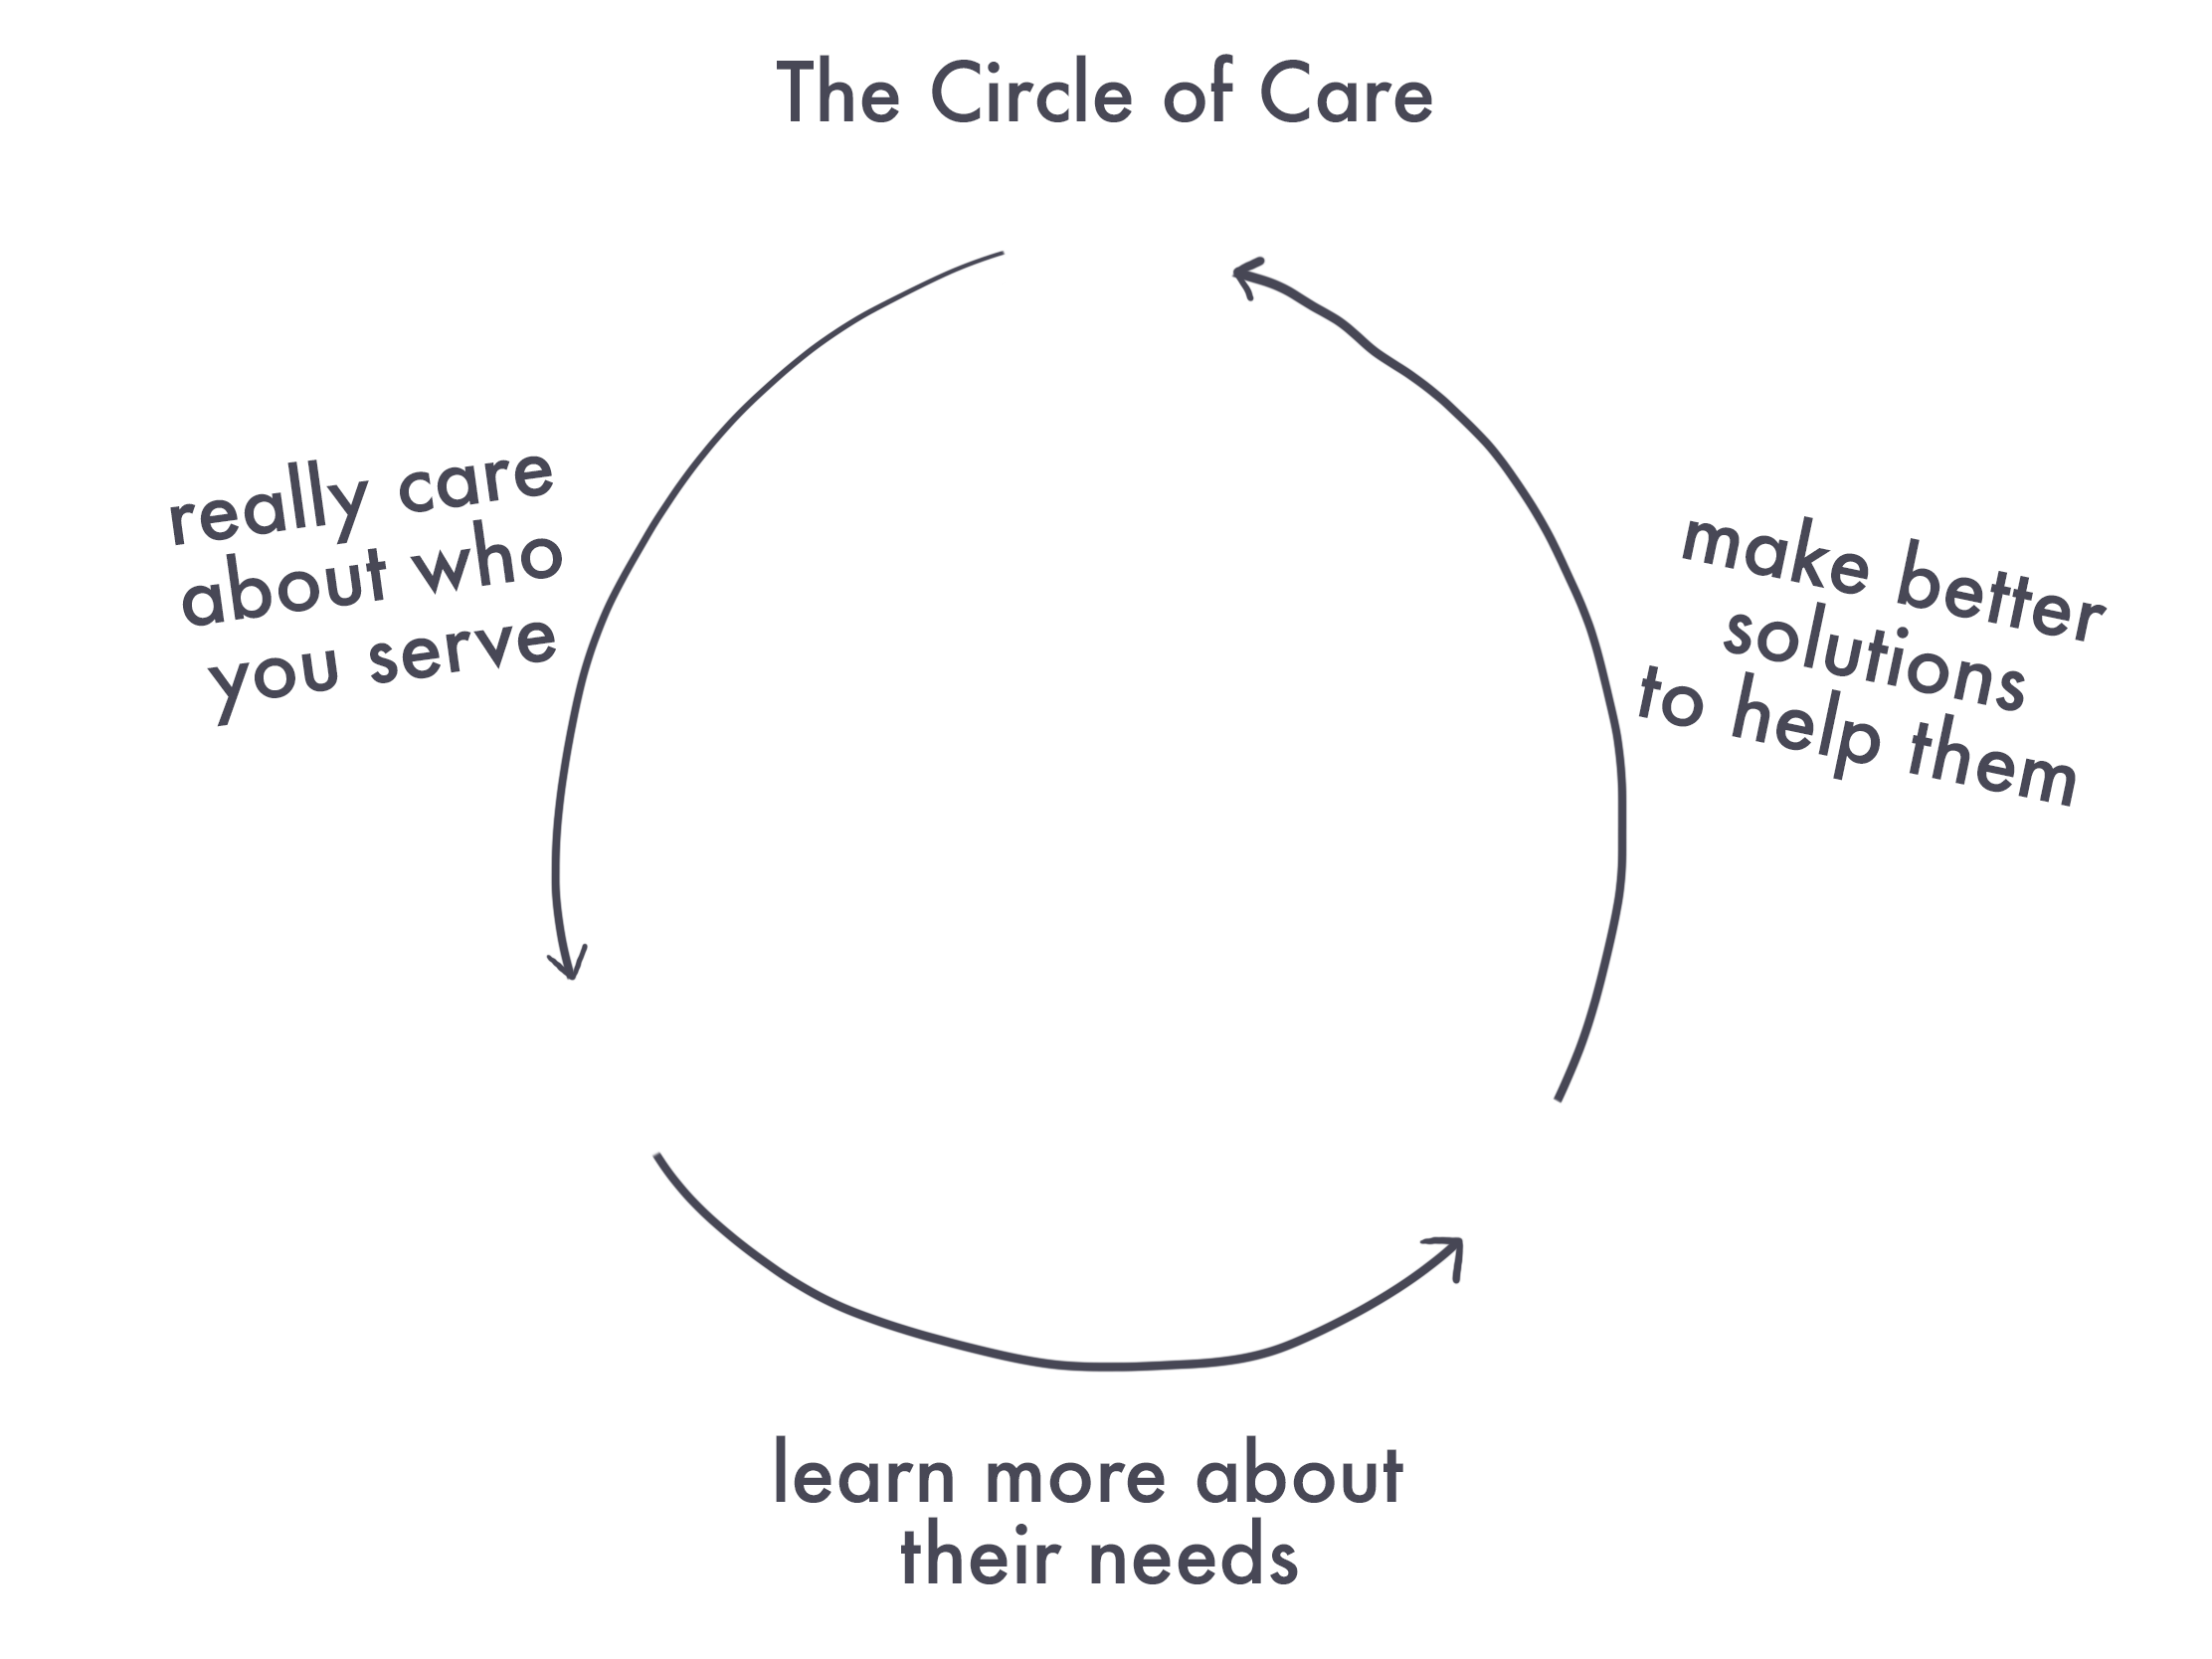 The Circle of Care